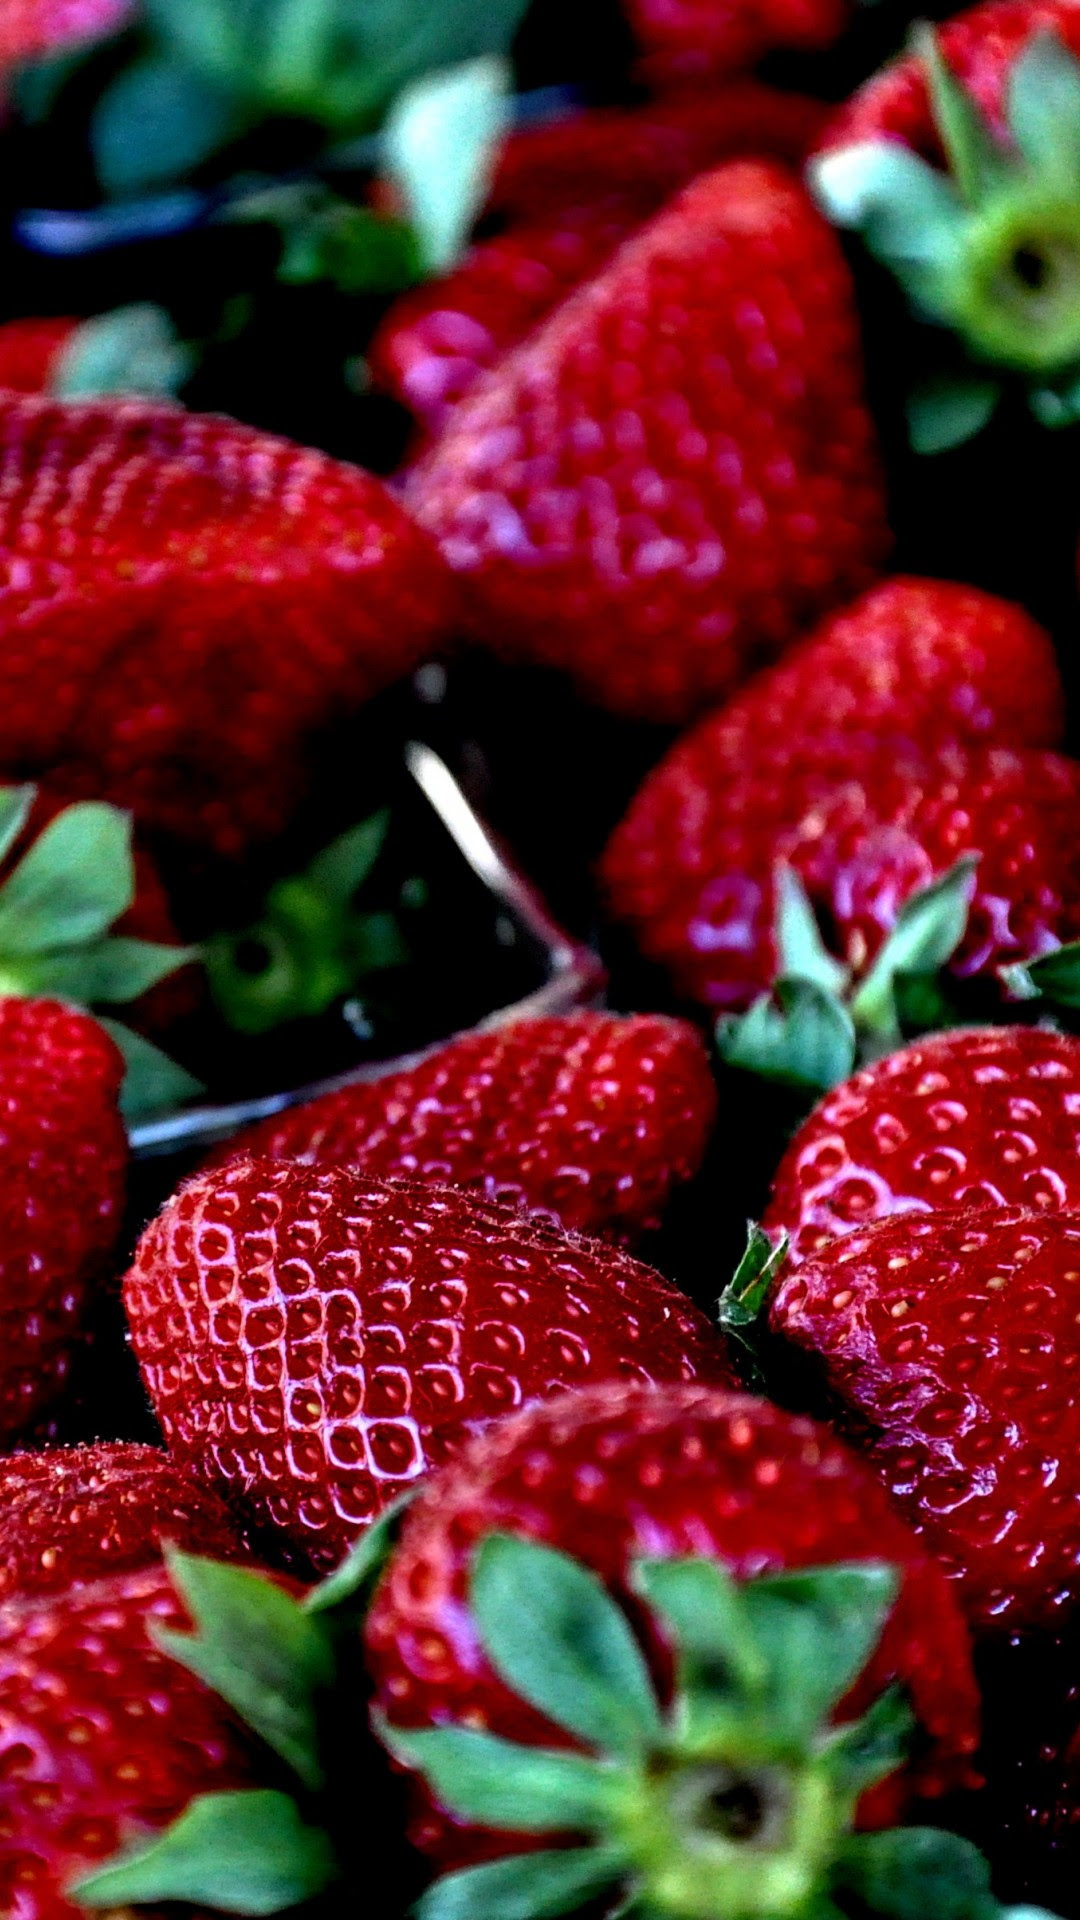 Download Free Strawberry Hd Wallpaper for Desktop and ...